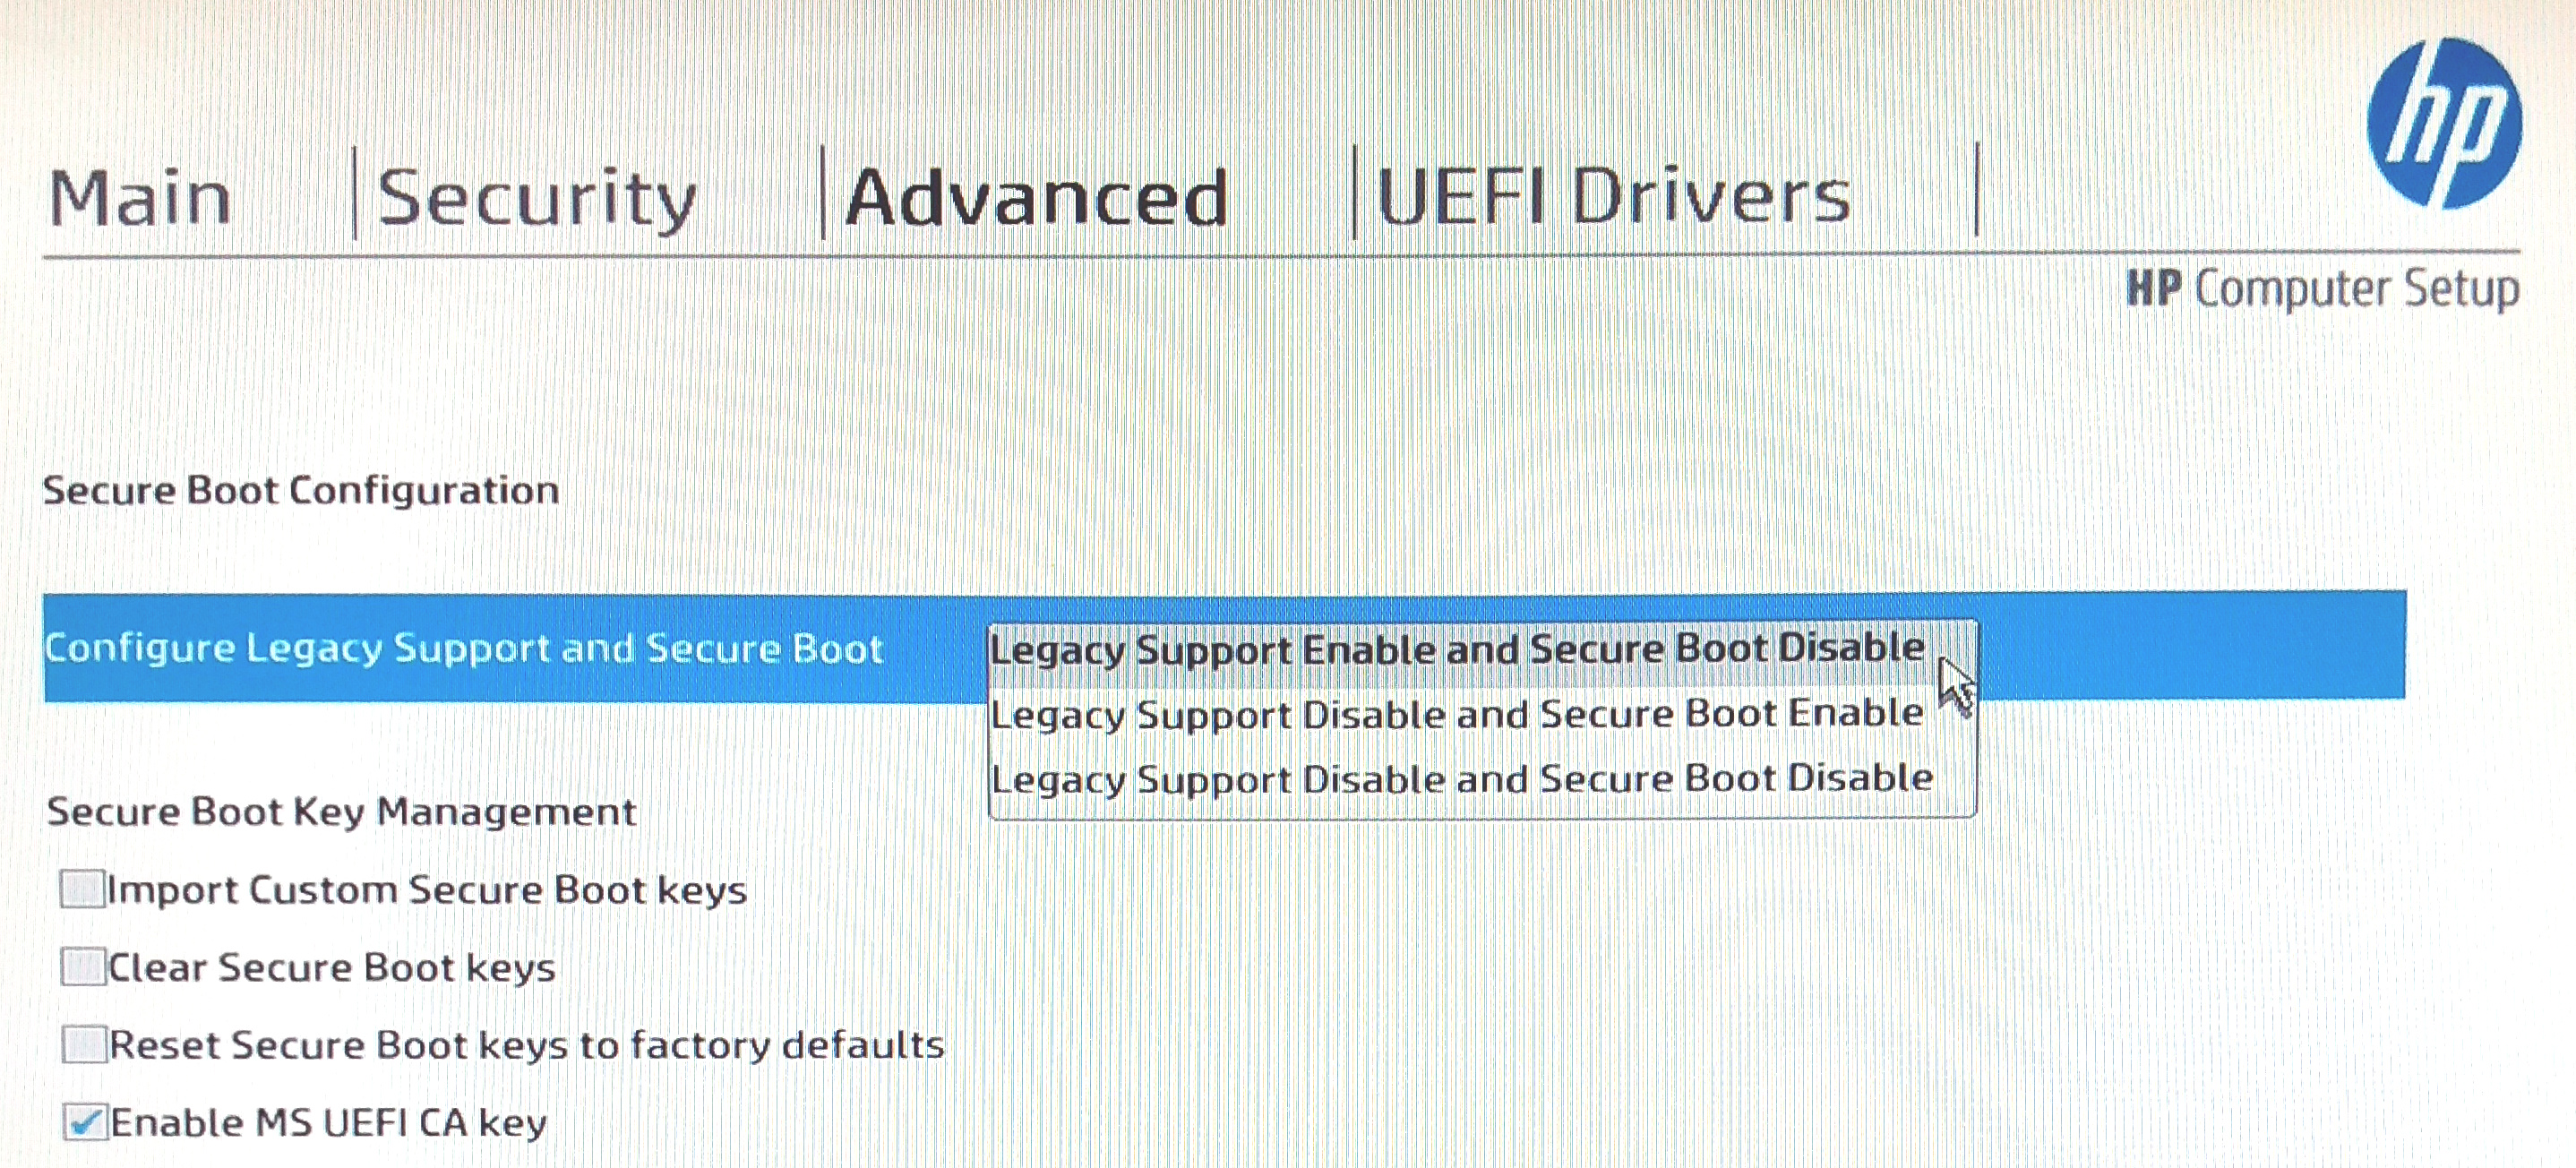 BIOS setup screen showing Secure Boot options